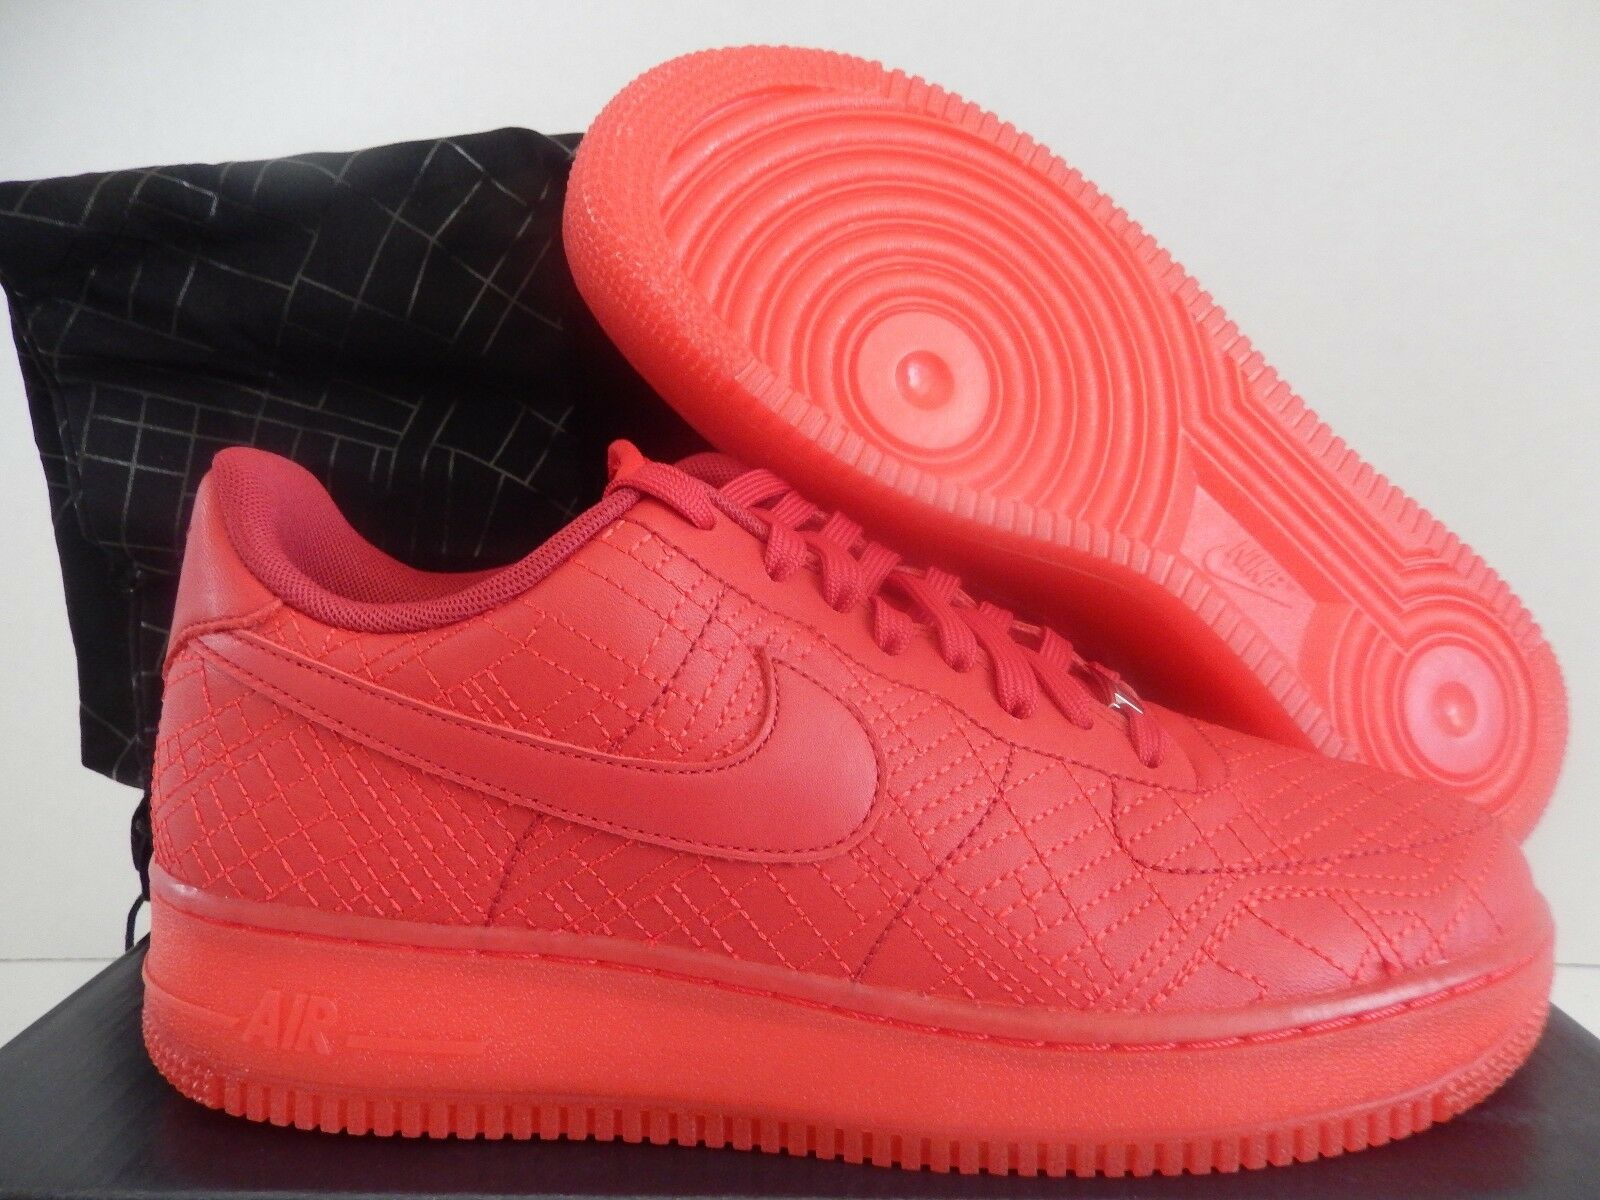 WMNS NIKE AIR FORCE 1 07 FW QS TOKYO CITY PACK RED-RED SZ 11 [704011-600]